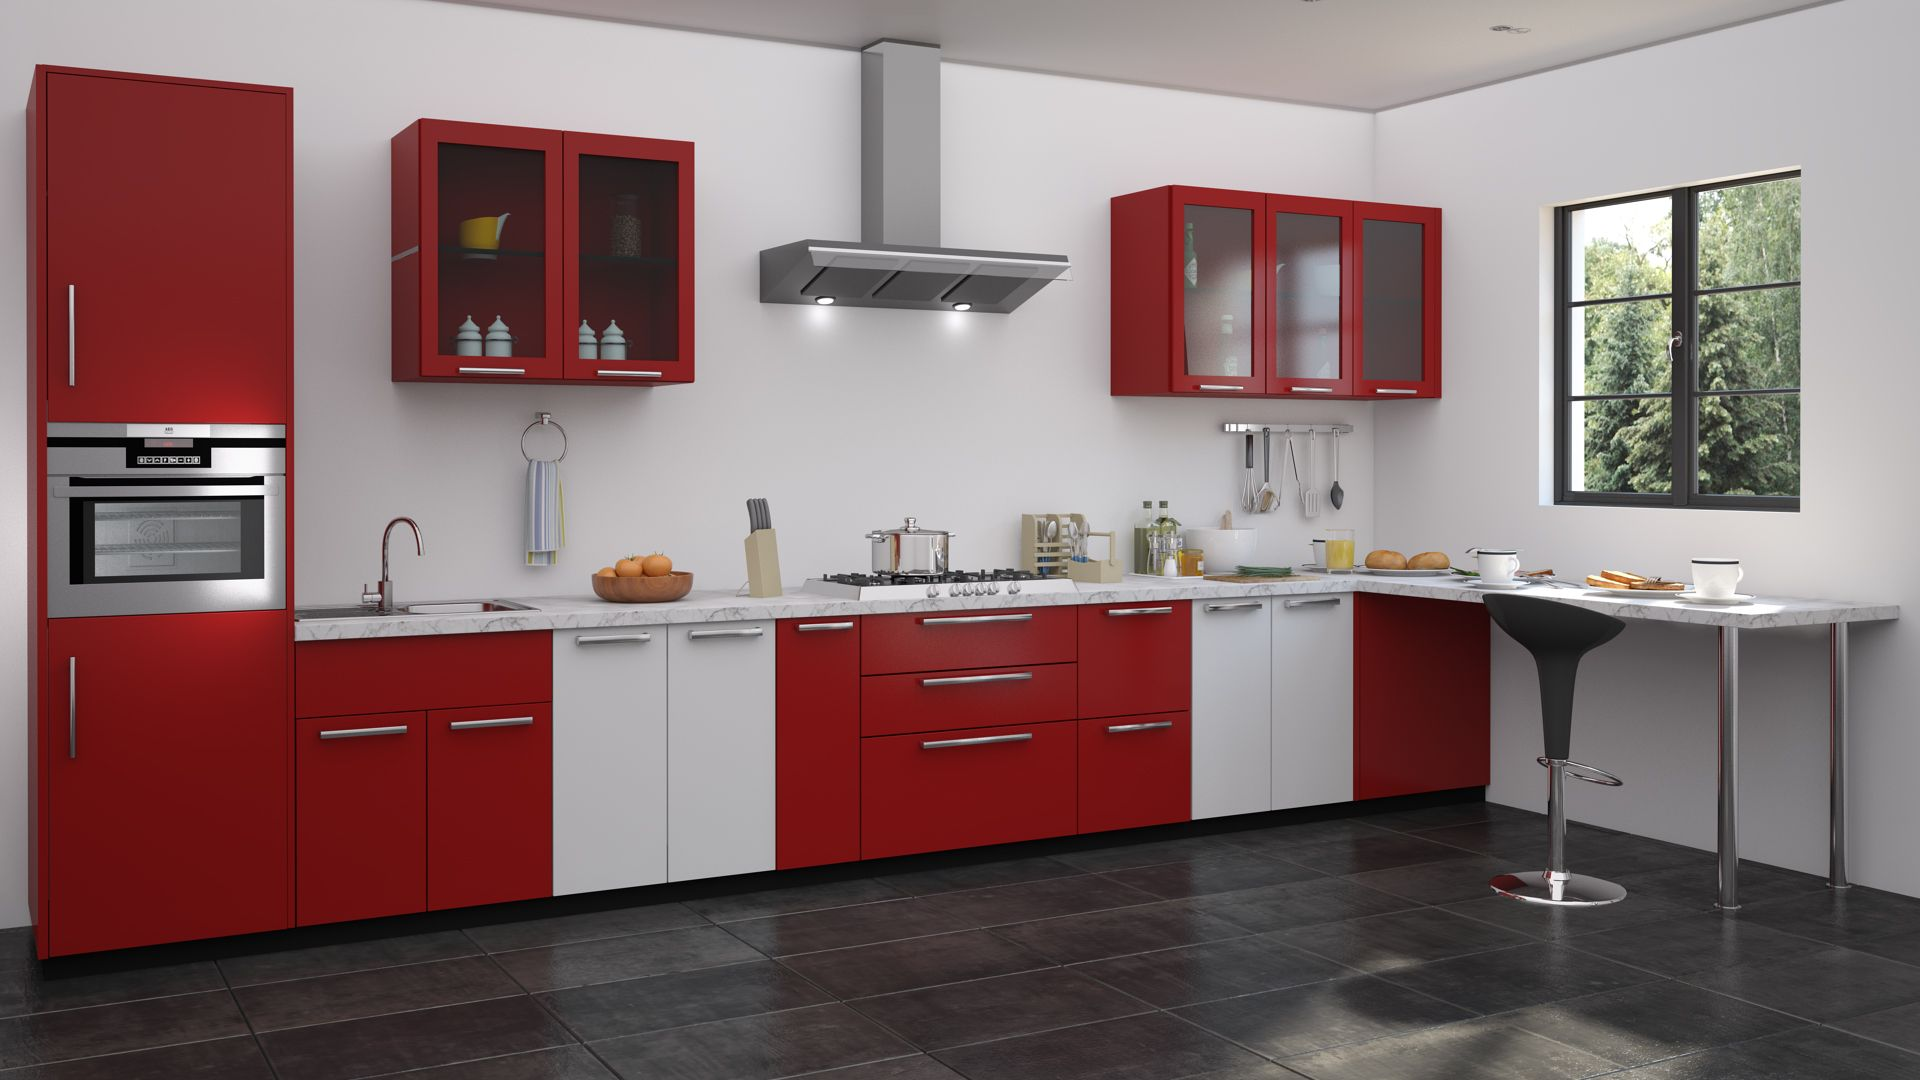 Gallery Of Kitchen Design In Red And White Black